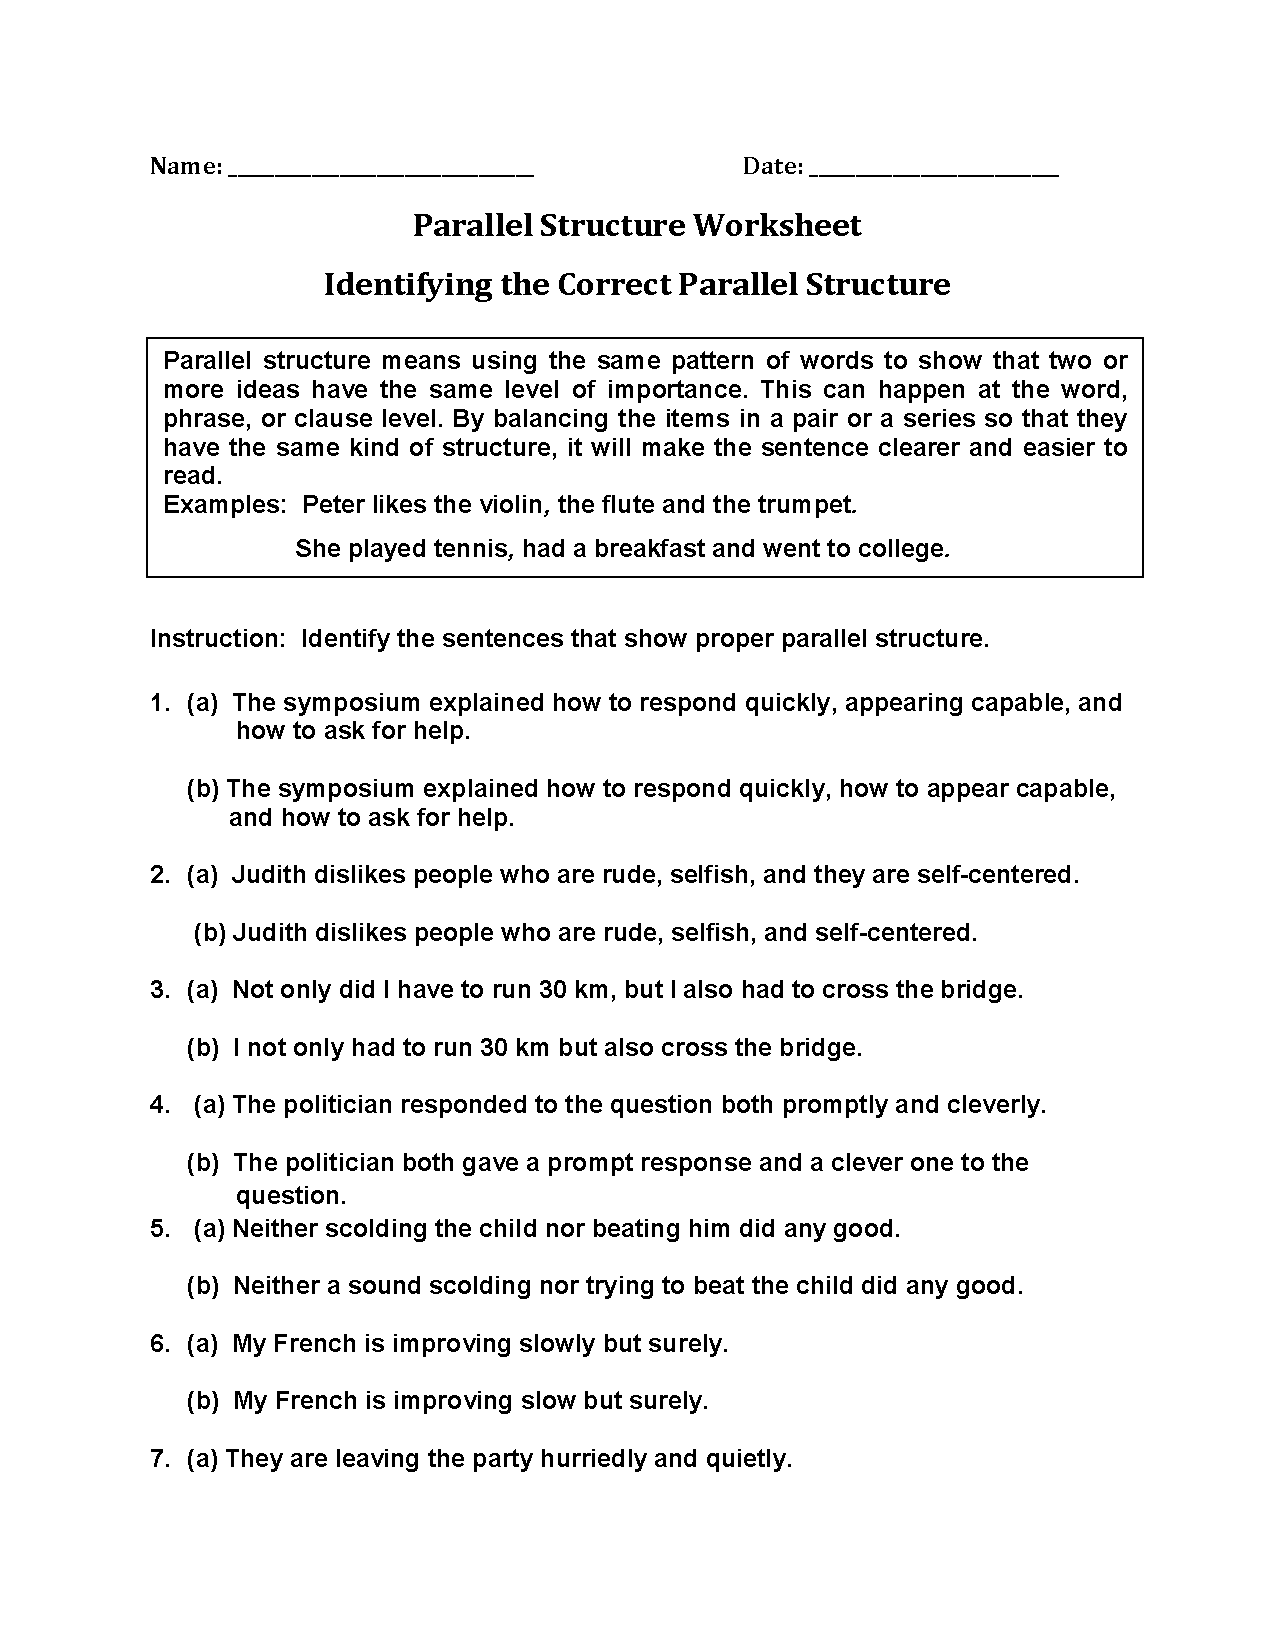 Parallel Sentence Structure Worksheet